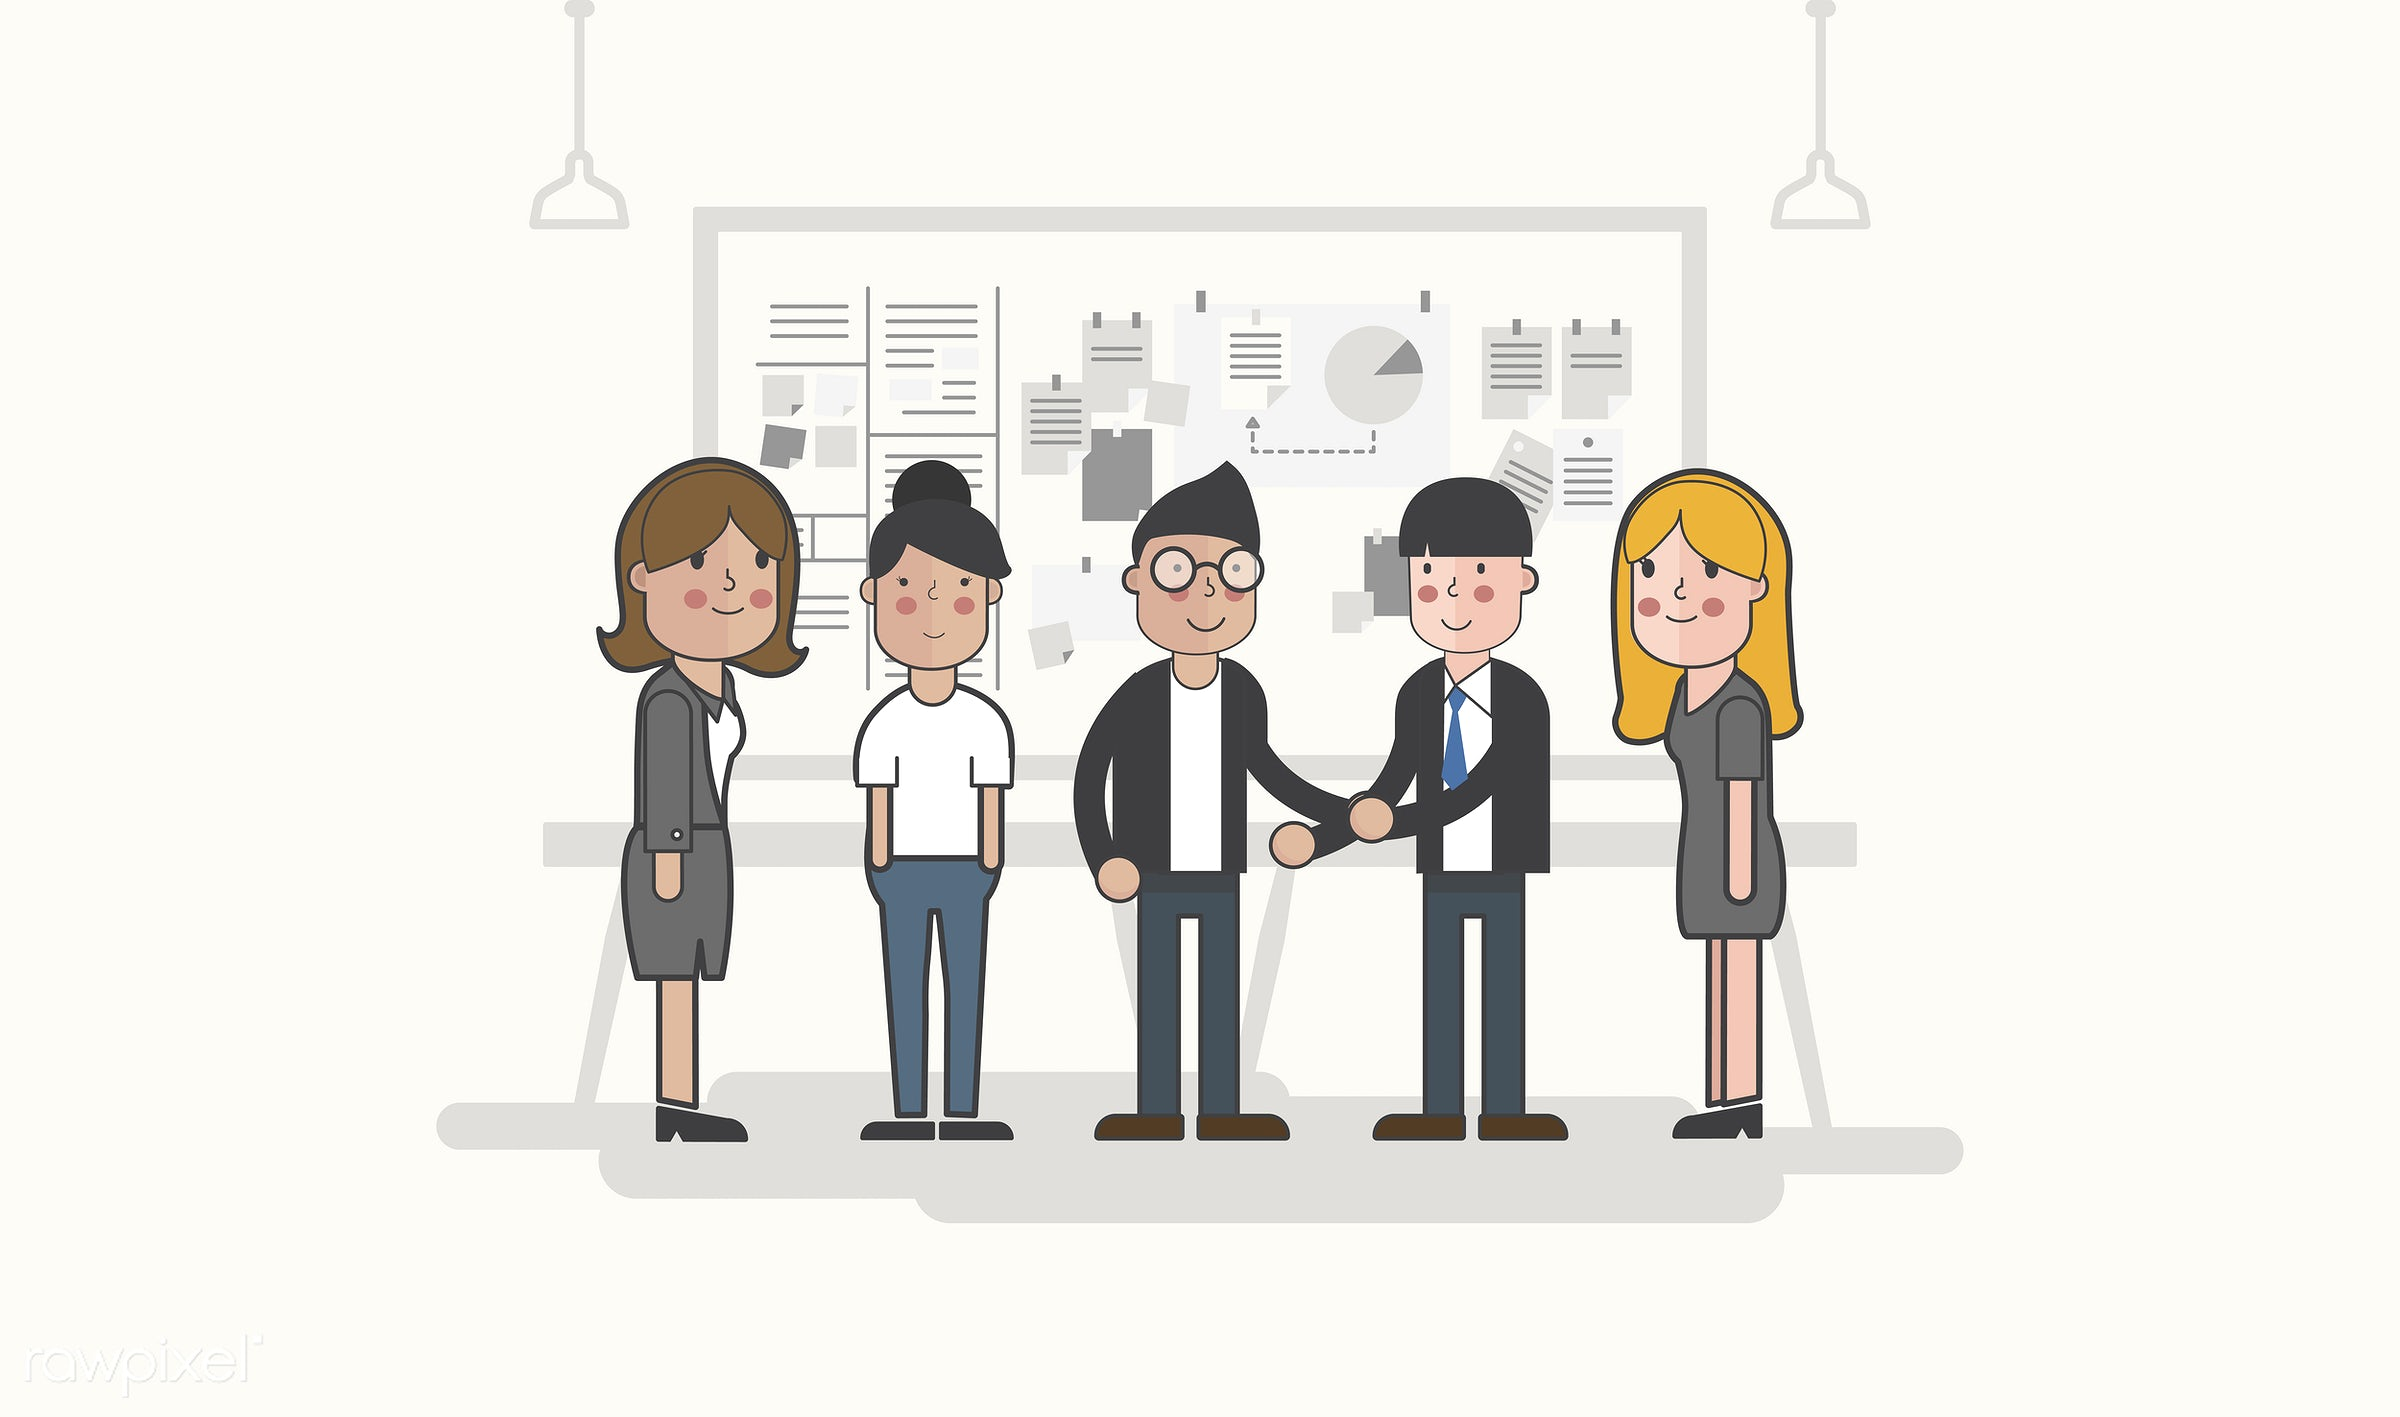 Illustration of business people avatar - presentation, analysis, artwork, avatar, business, cartoon, character, conference,...